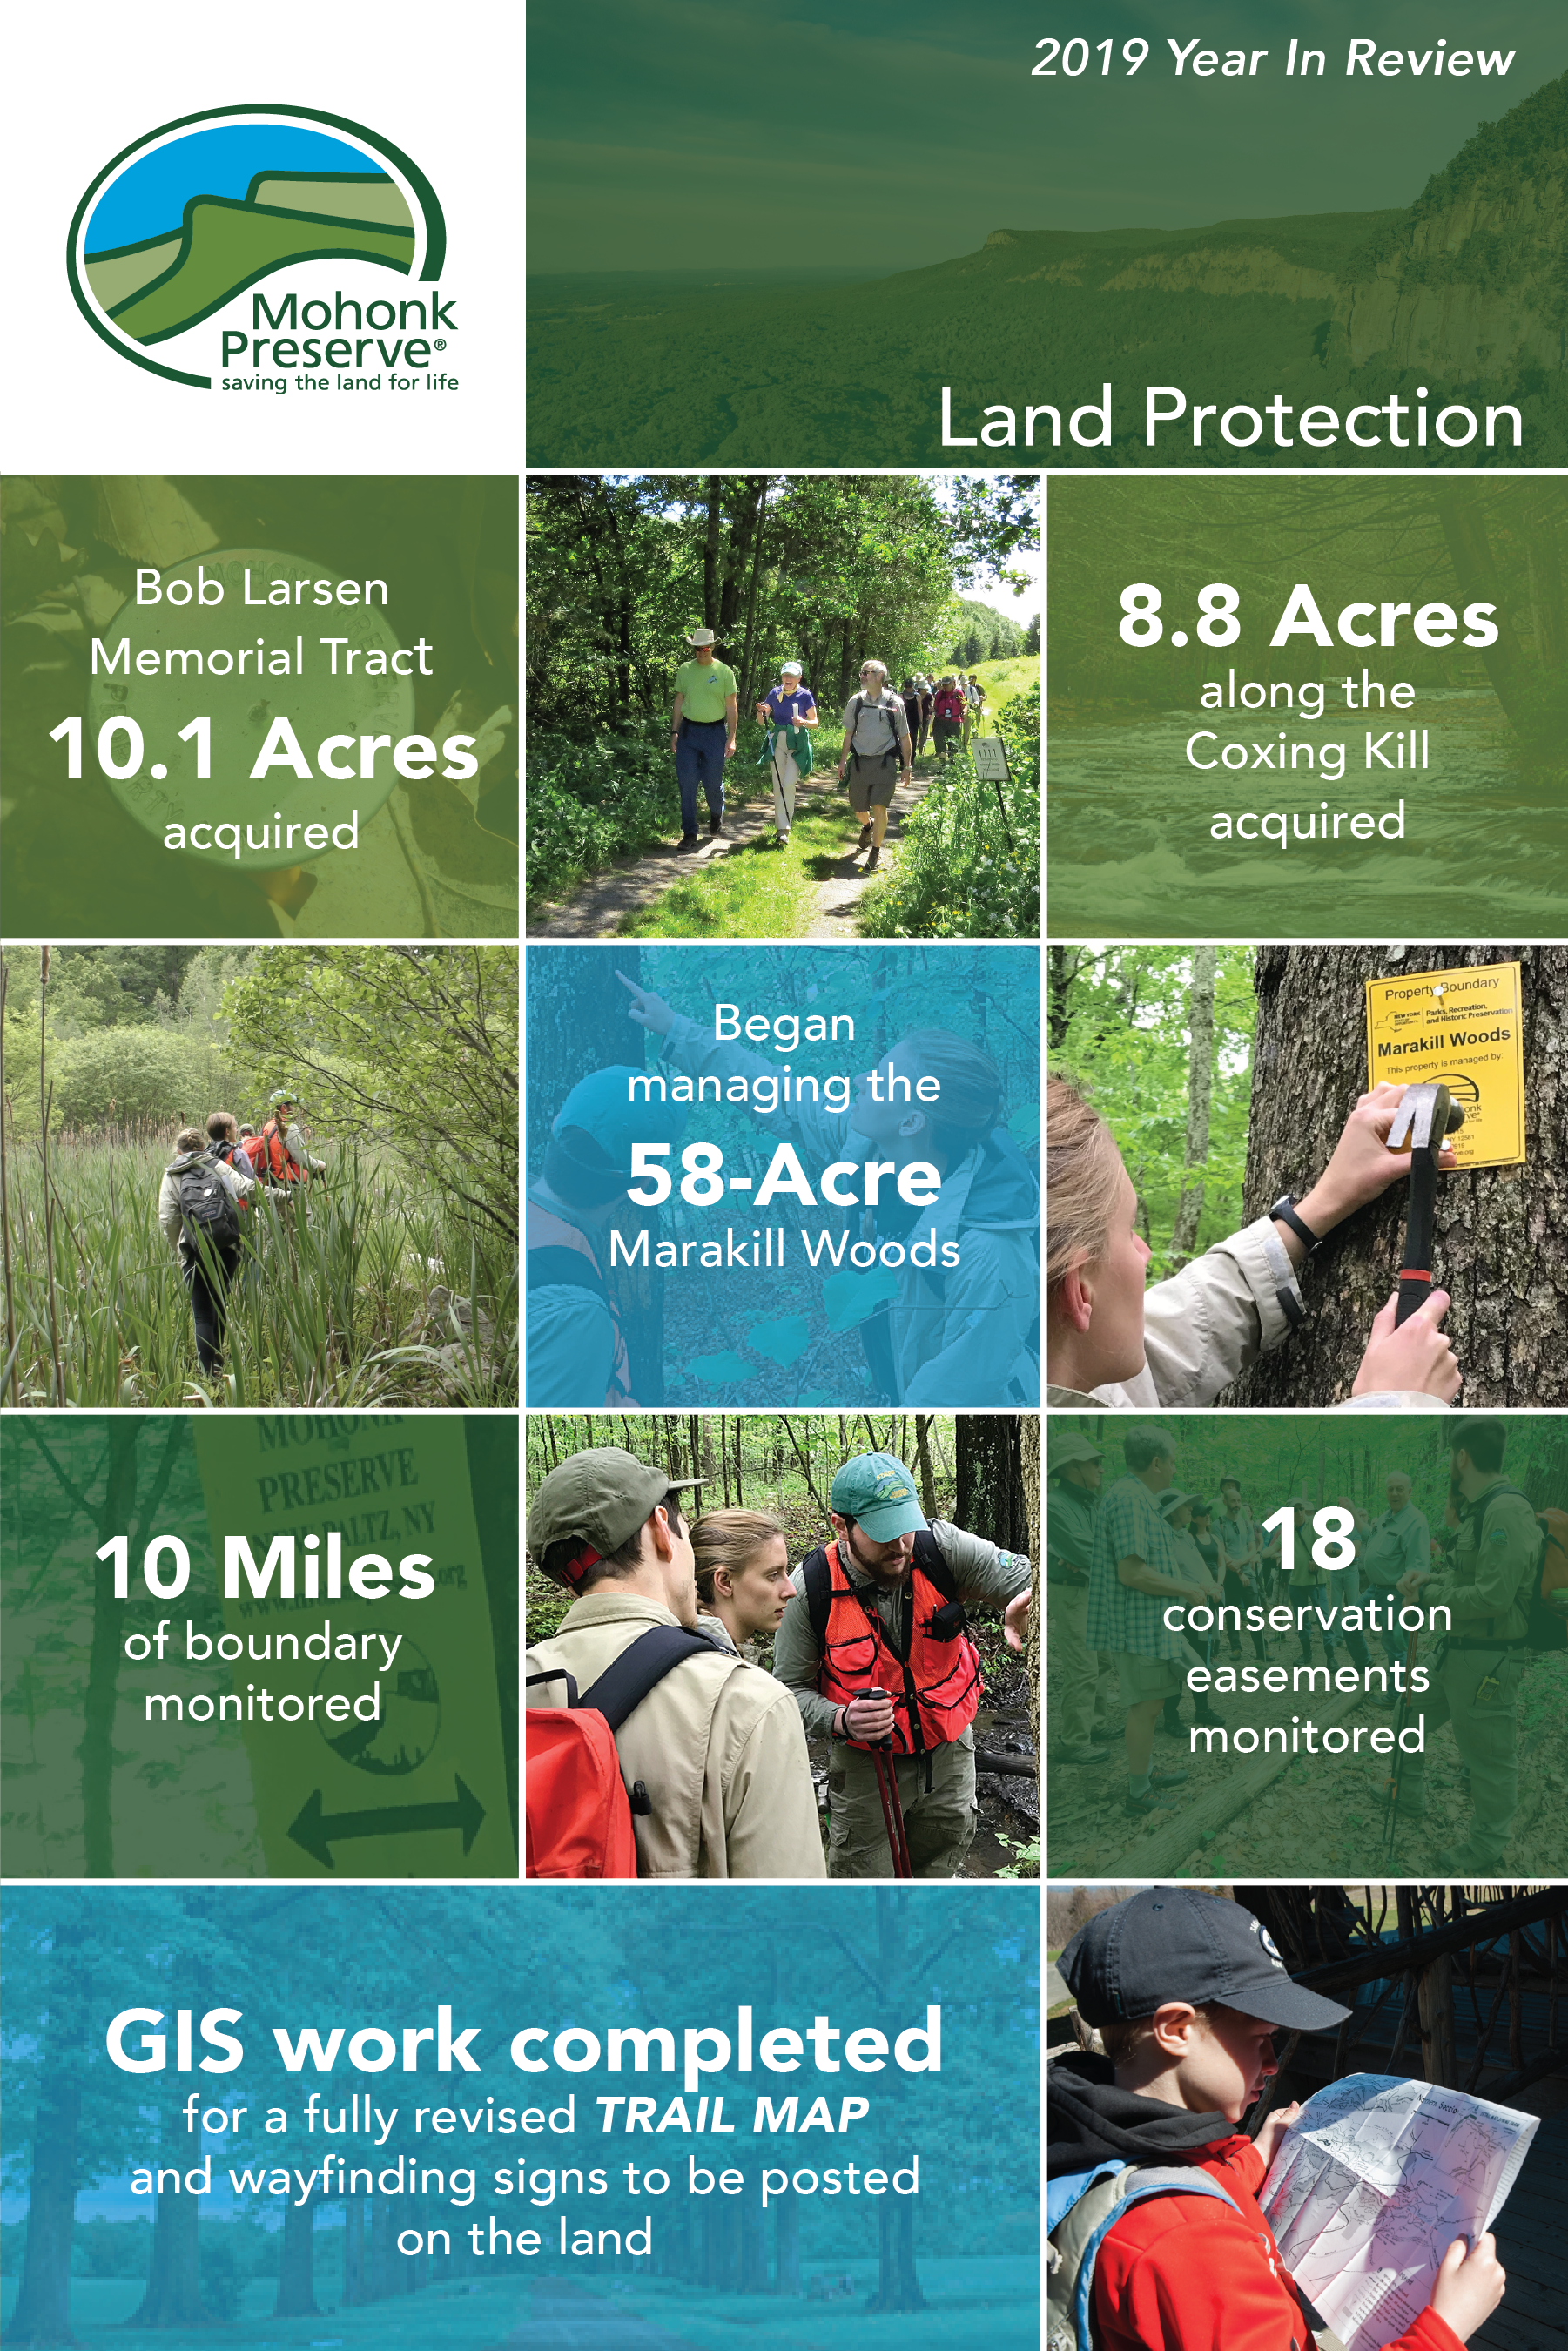 Land Protection